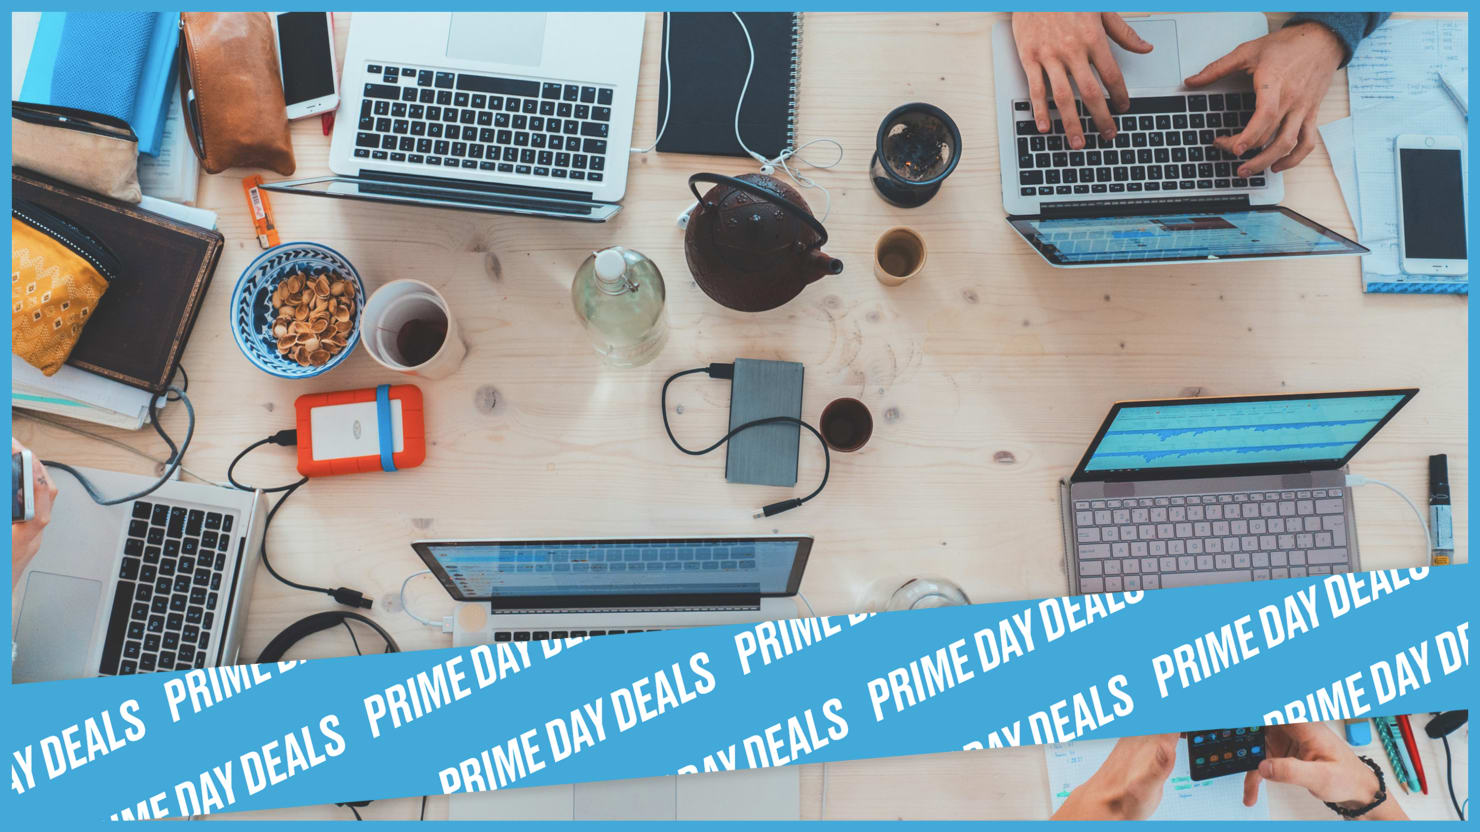 It's Raining Deals: Amazon Prime Day is Here! - cover